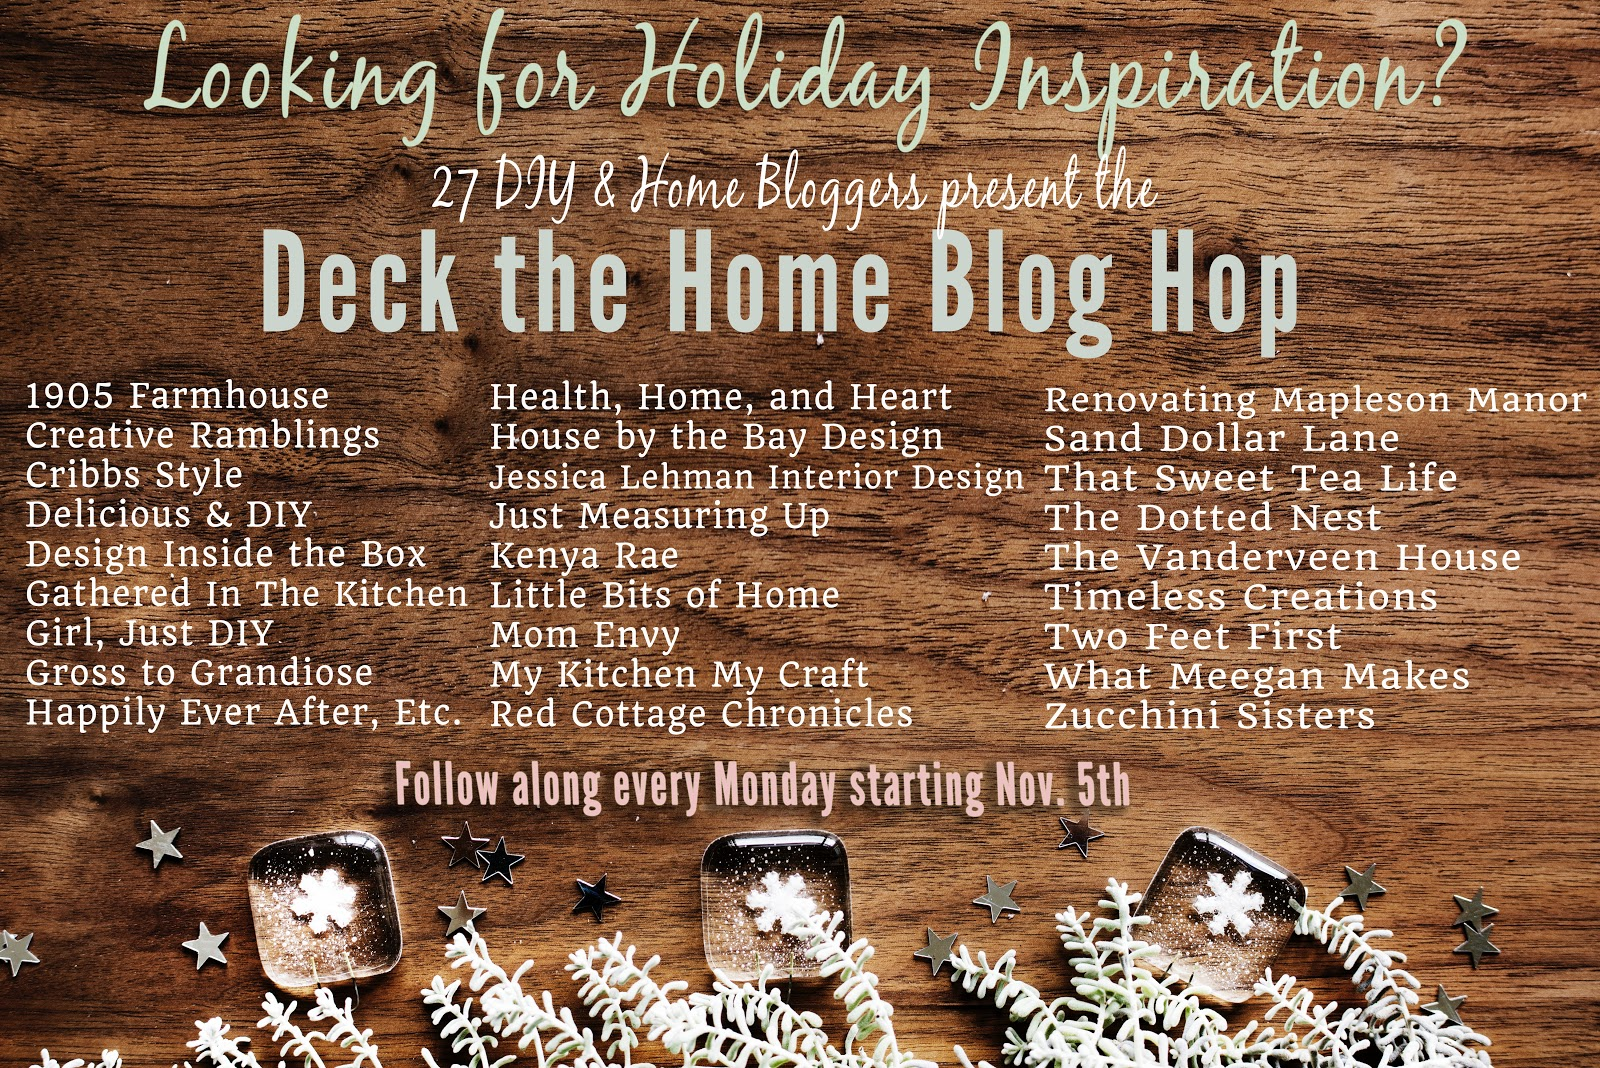 Deck The Home Blog Hop